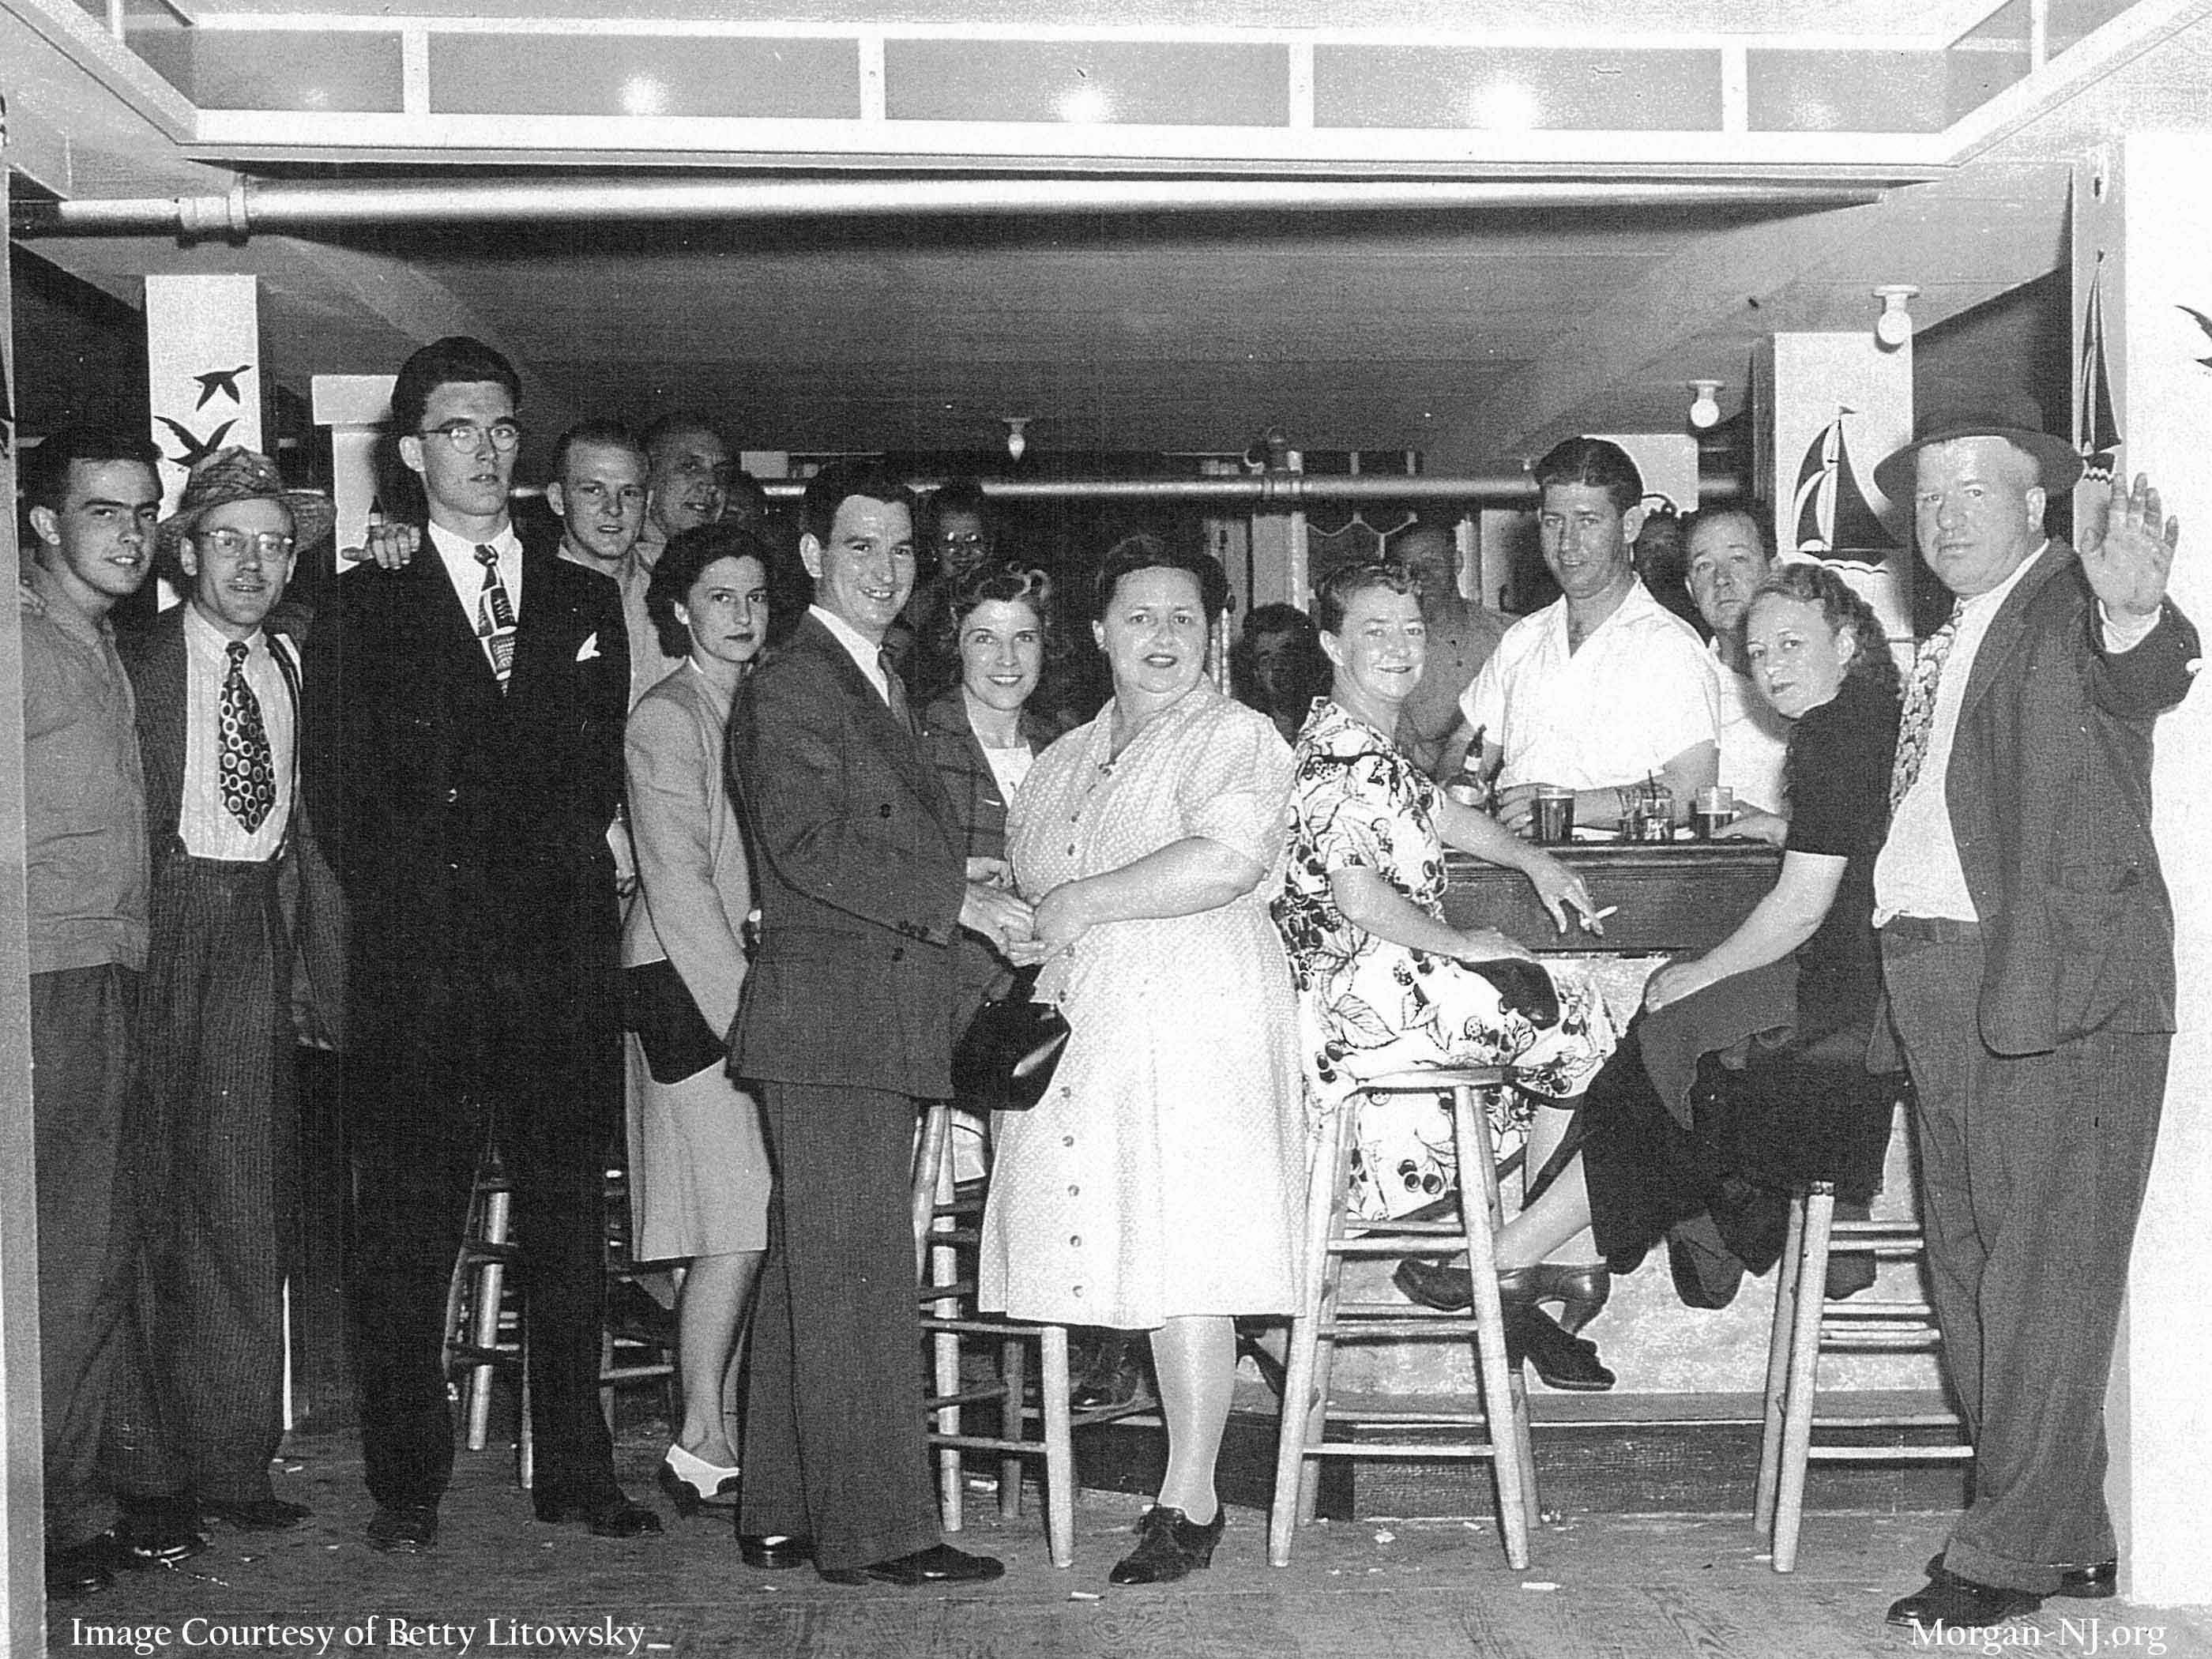 """""""The Gang"""" in the downstairs bar at the Robert E. Lee Inn, circa 1944. Image courtesy of Betty Macrae Litowsky."""